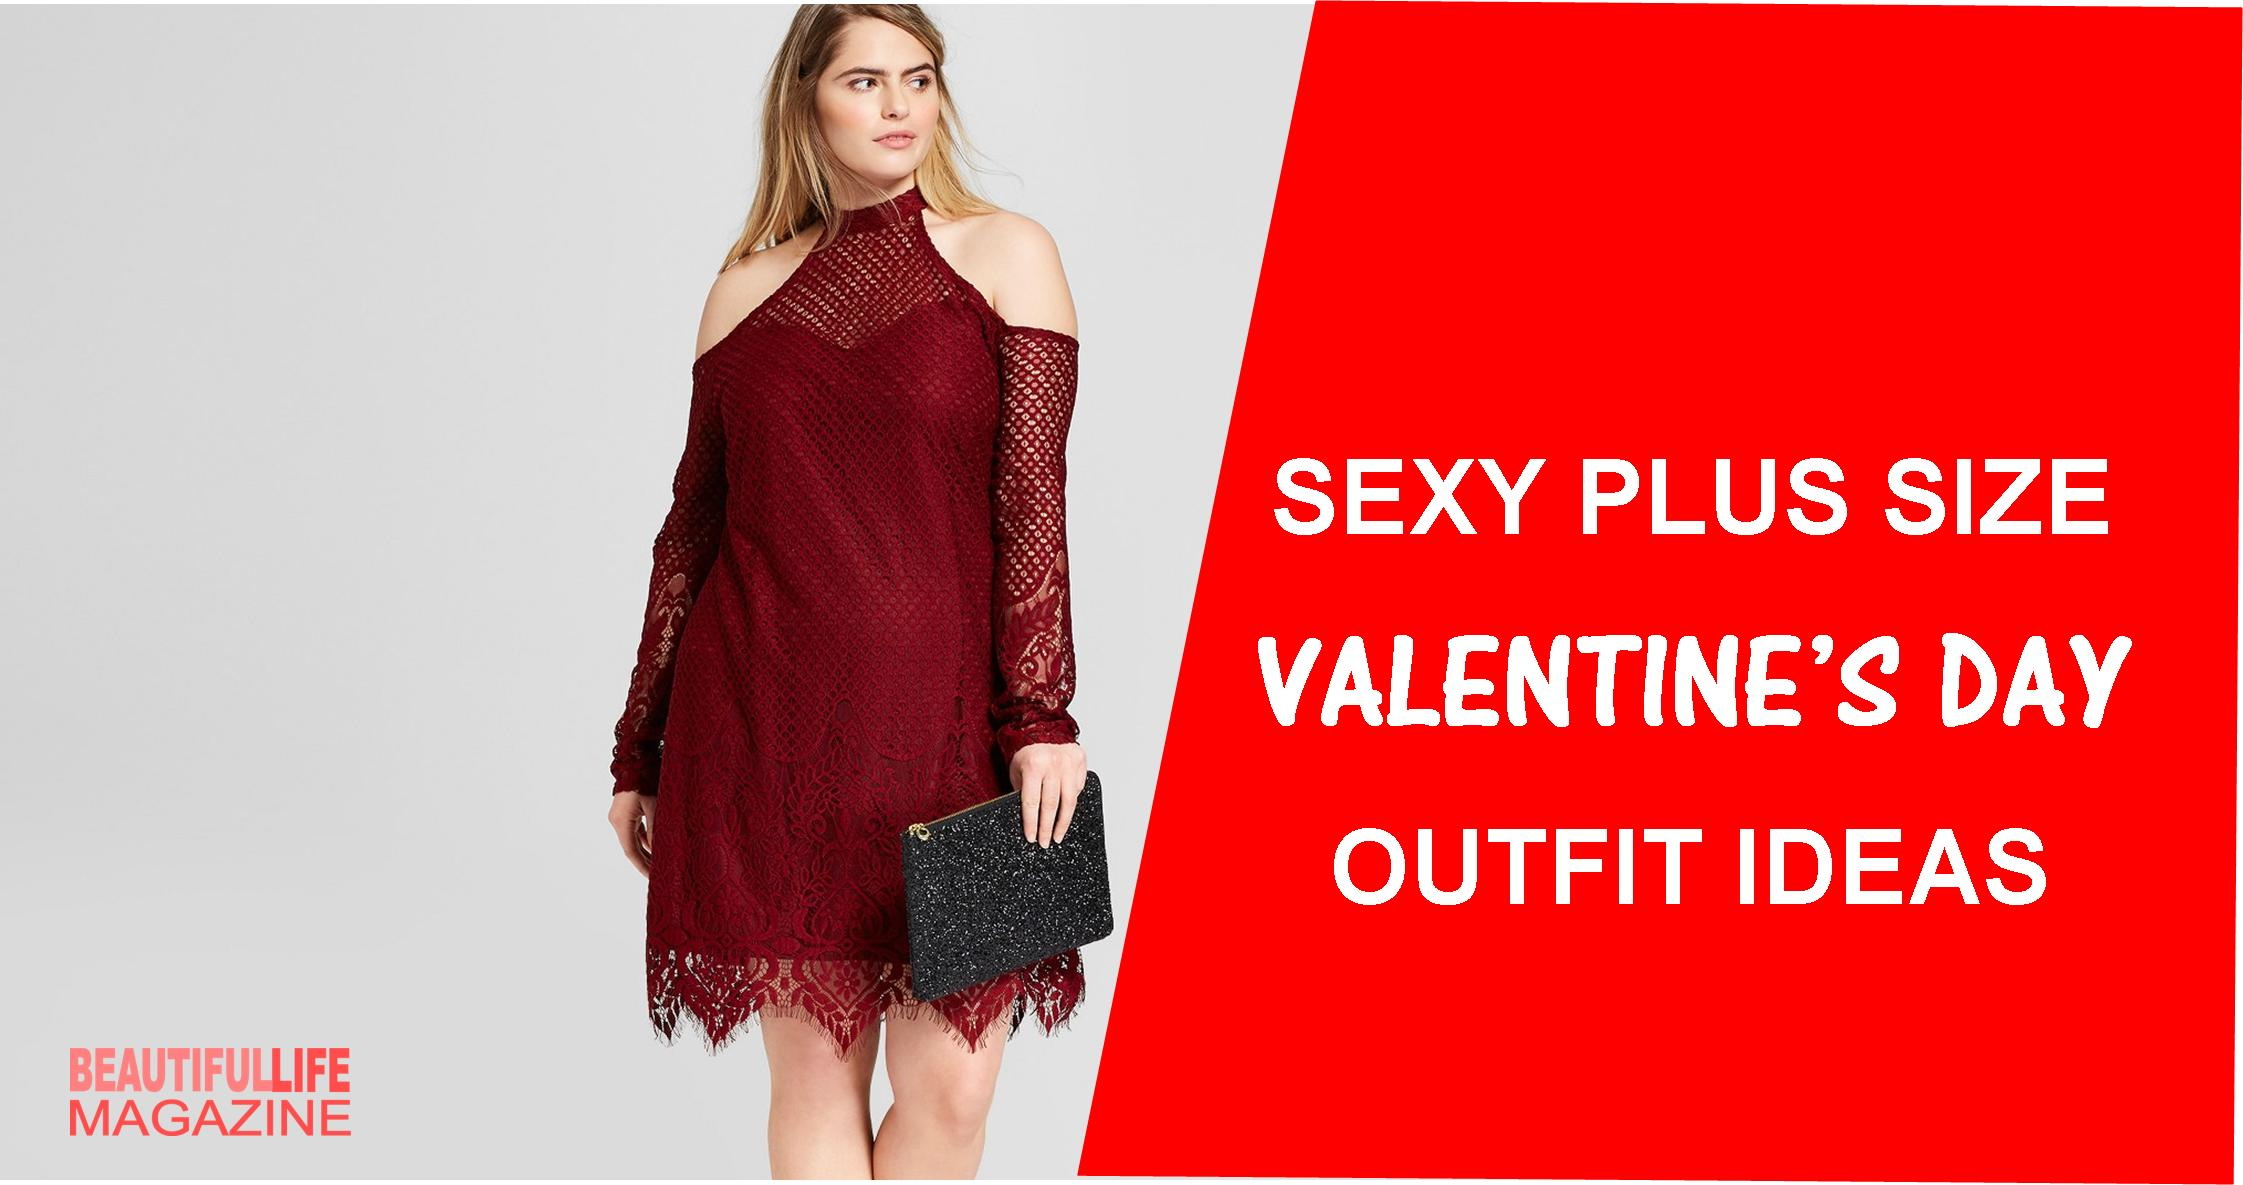 10 Sexy Plus Size Valentine S Day Outfit Ideas Beautiful Life Magazine